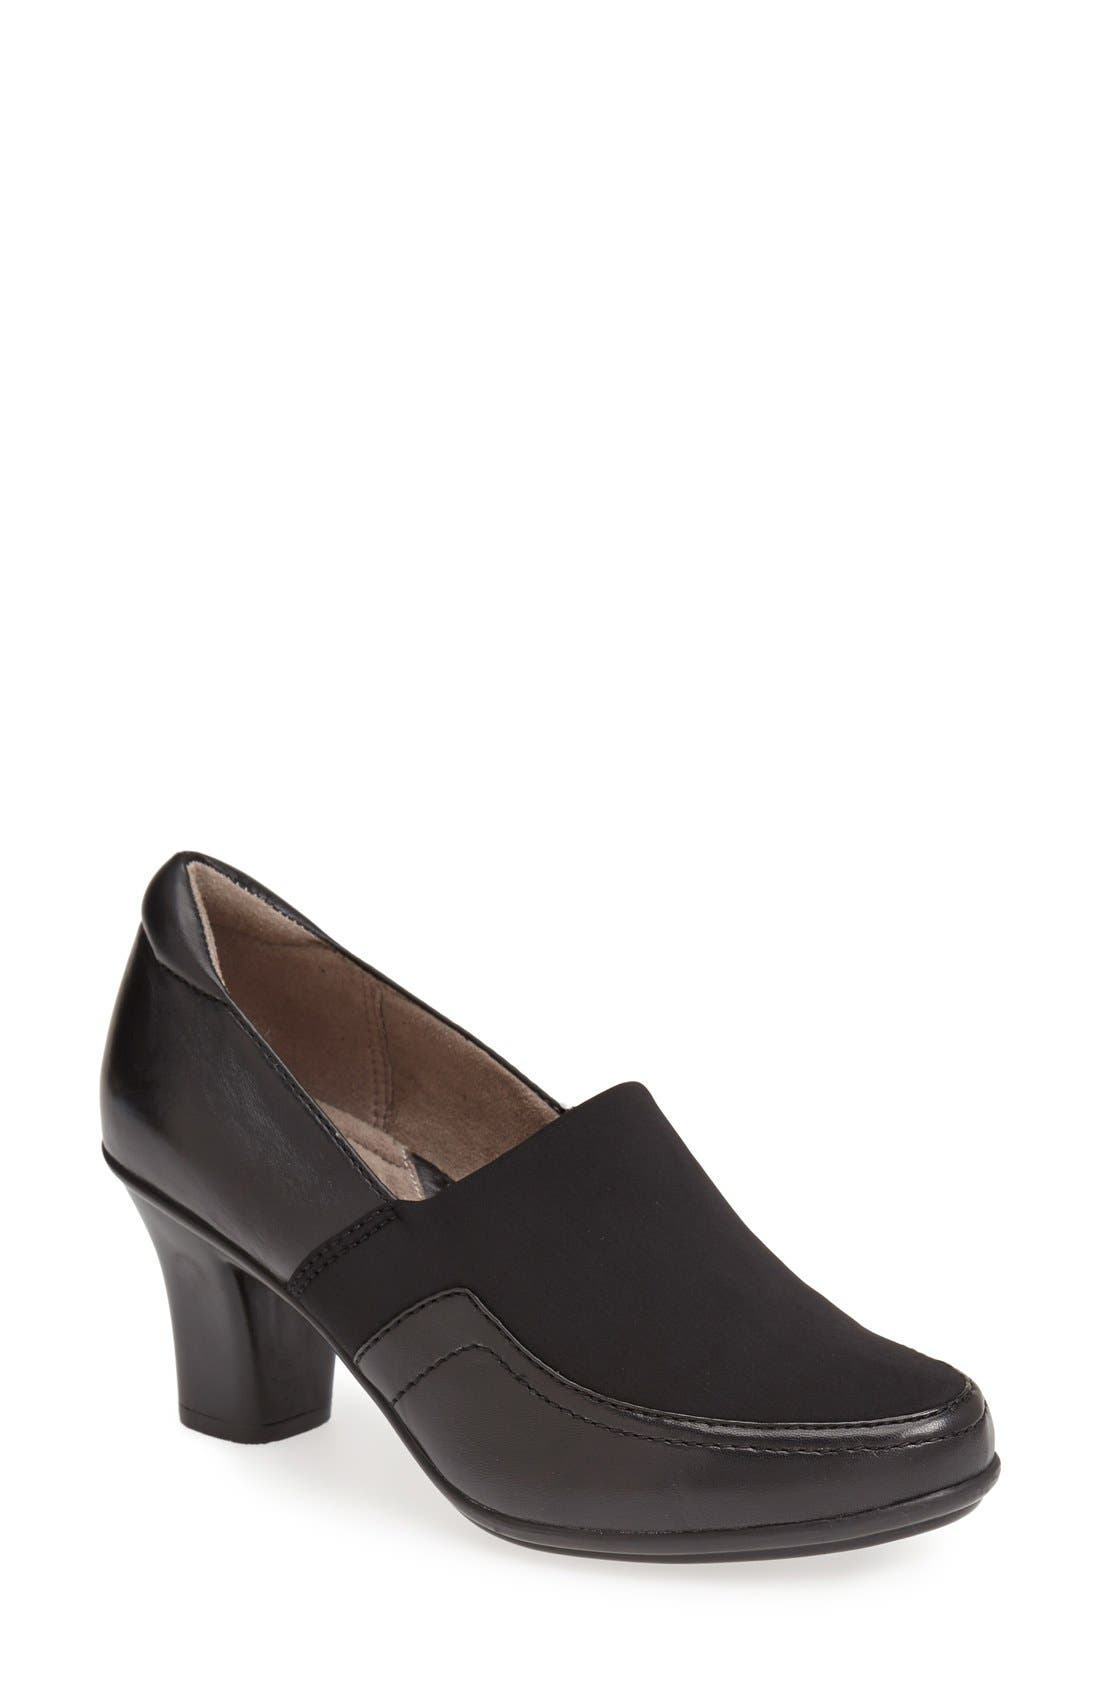 Alternate Image 1 Selected - Naturalizer 'Lotus' Tailored Pump (Women)